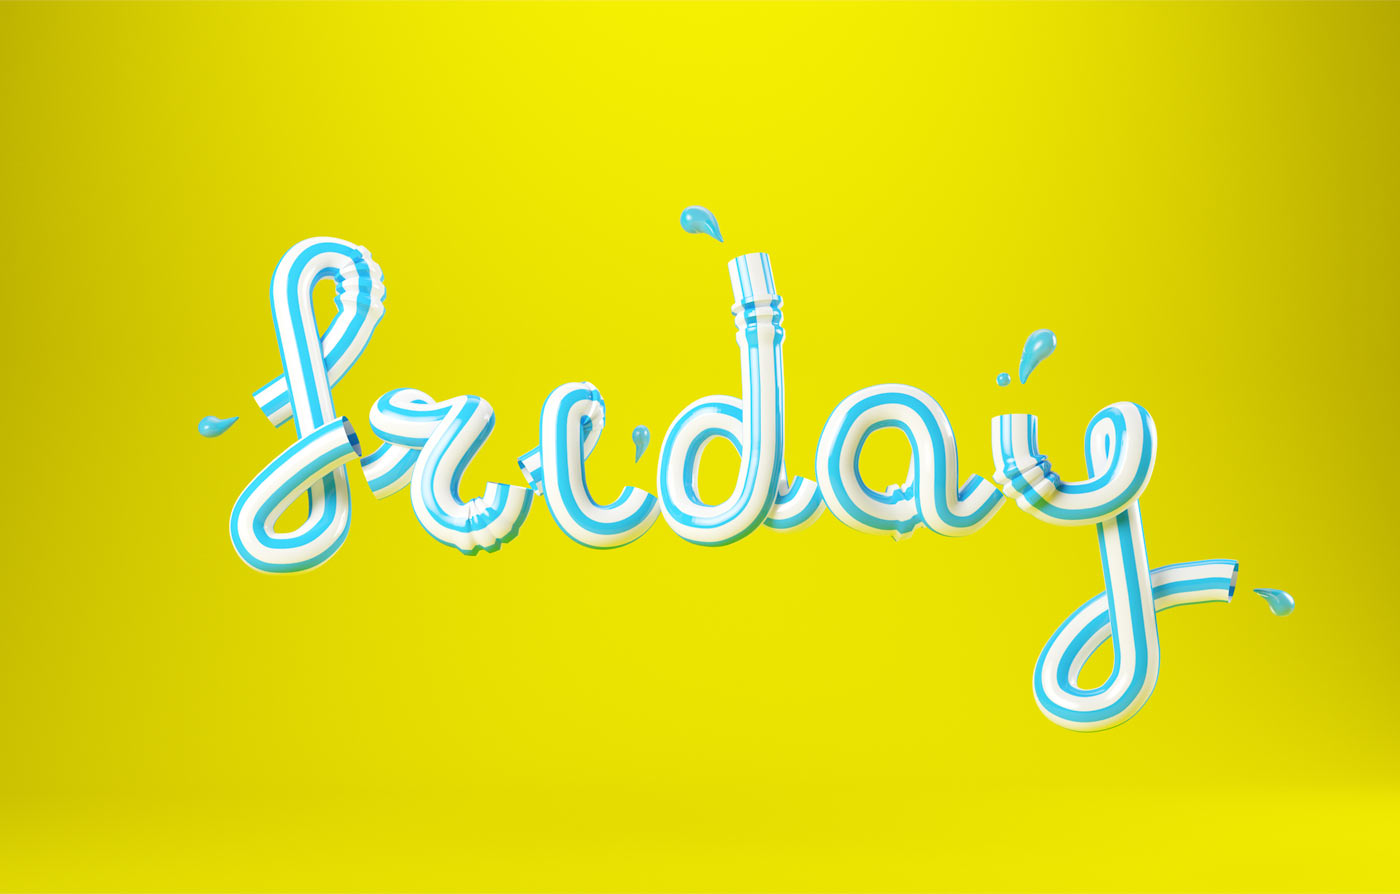 3DLETTERING CESS 3D 3DTYPE LETTERING CGI 3DARTIST DRINK FRIDAY FUN YUMMY